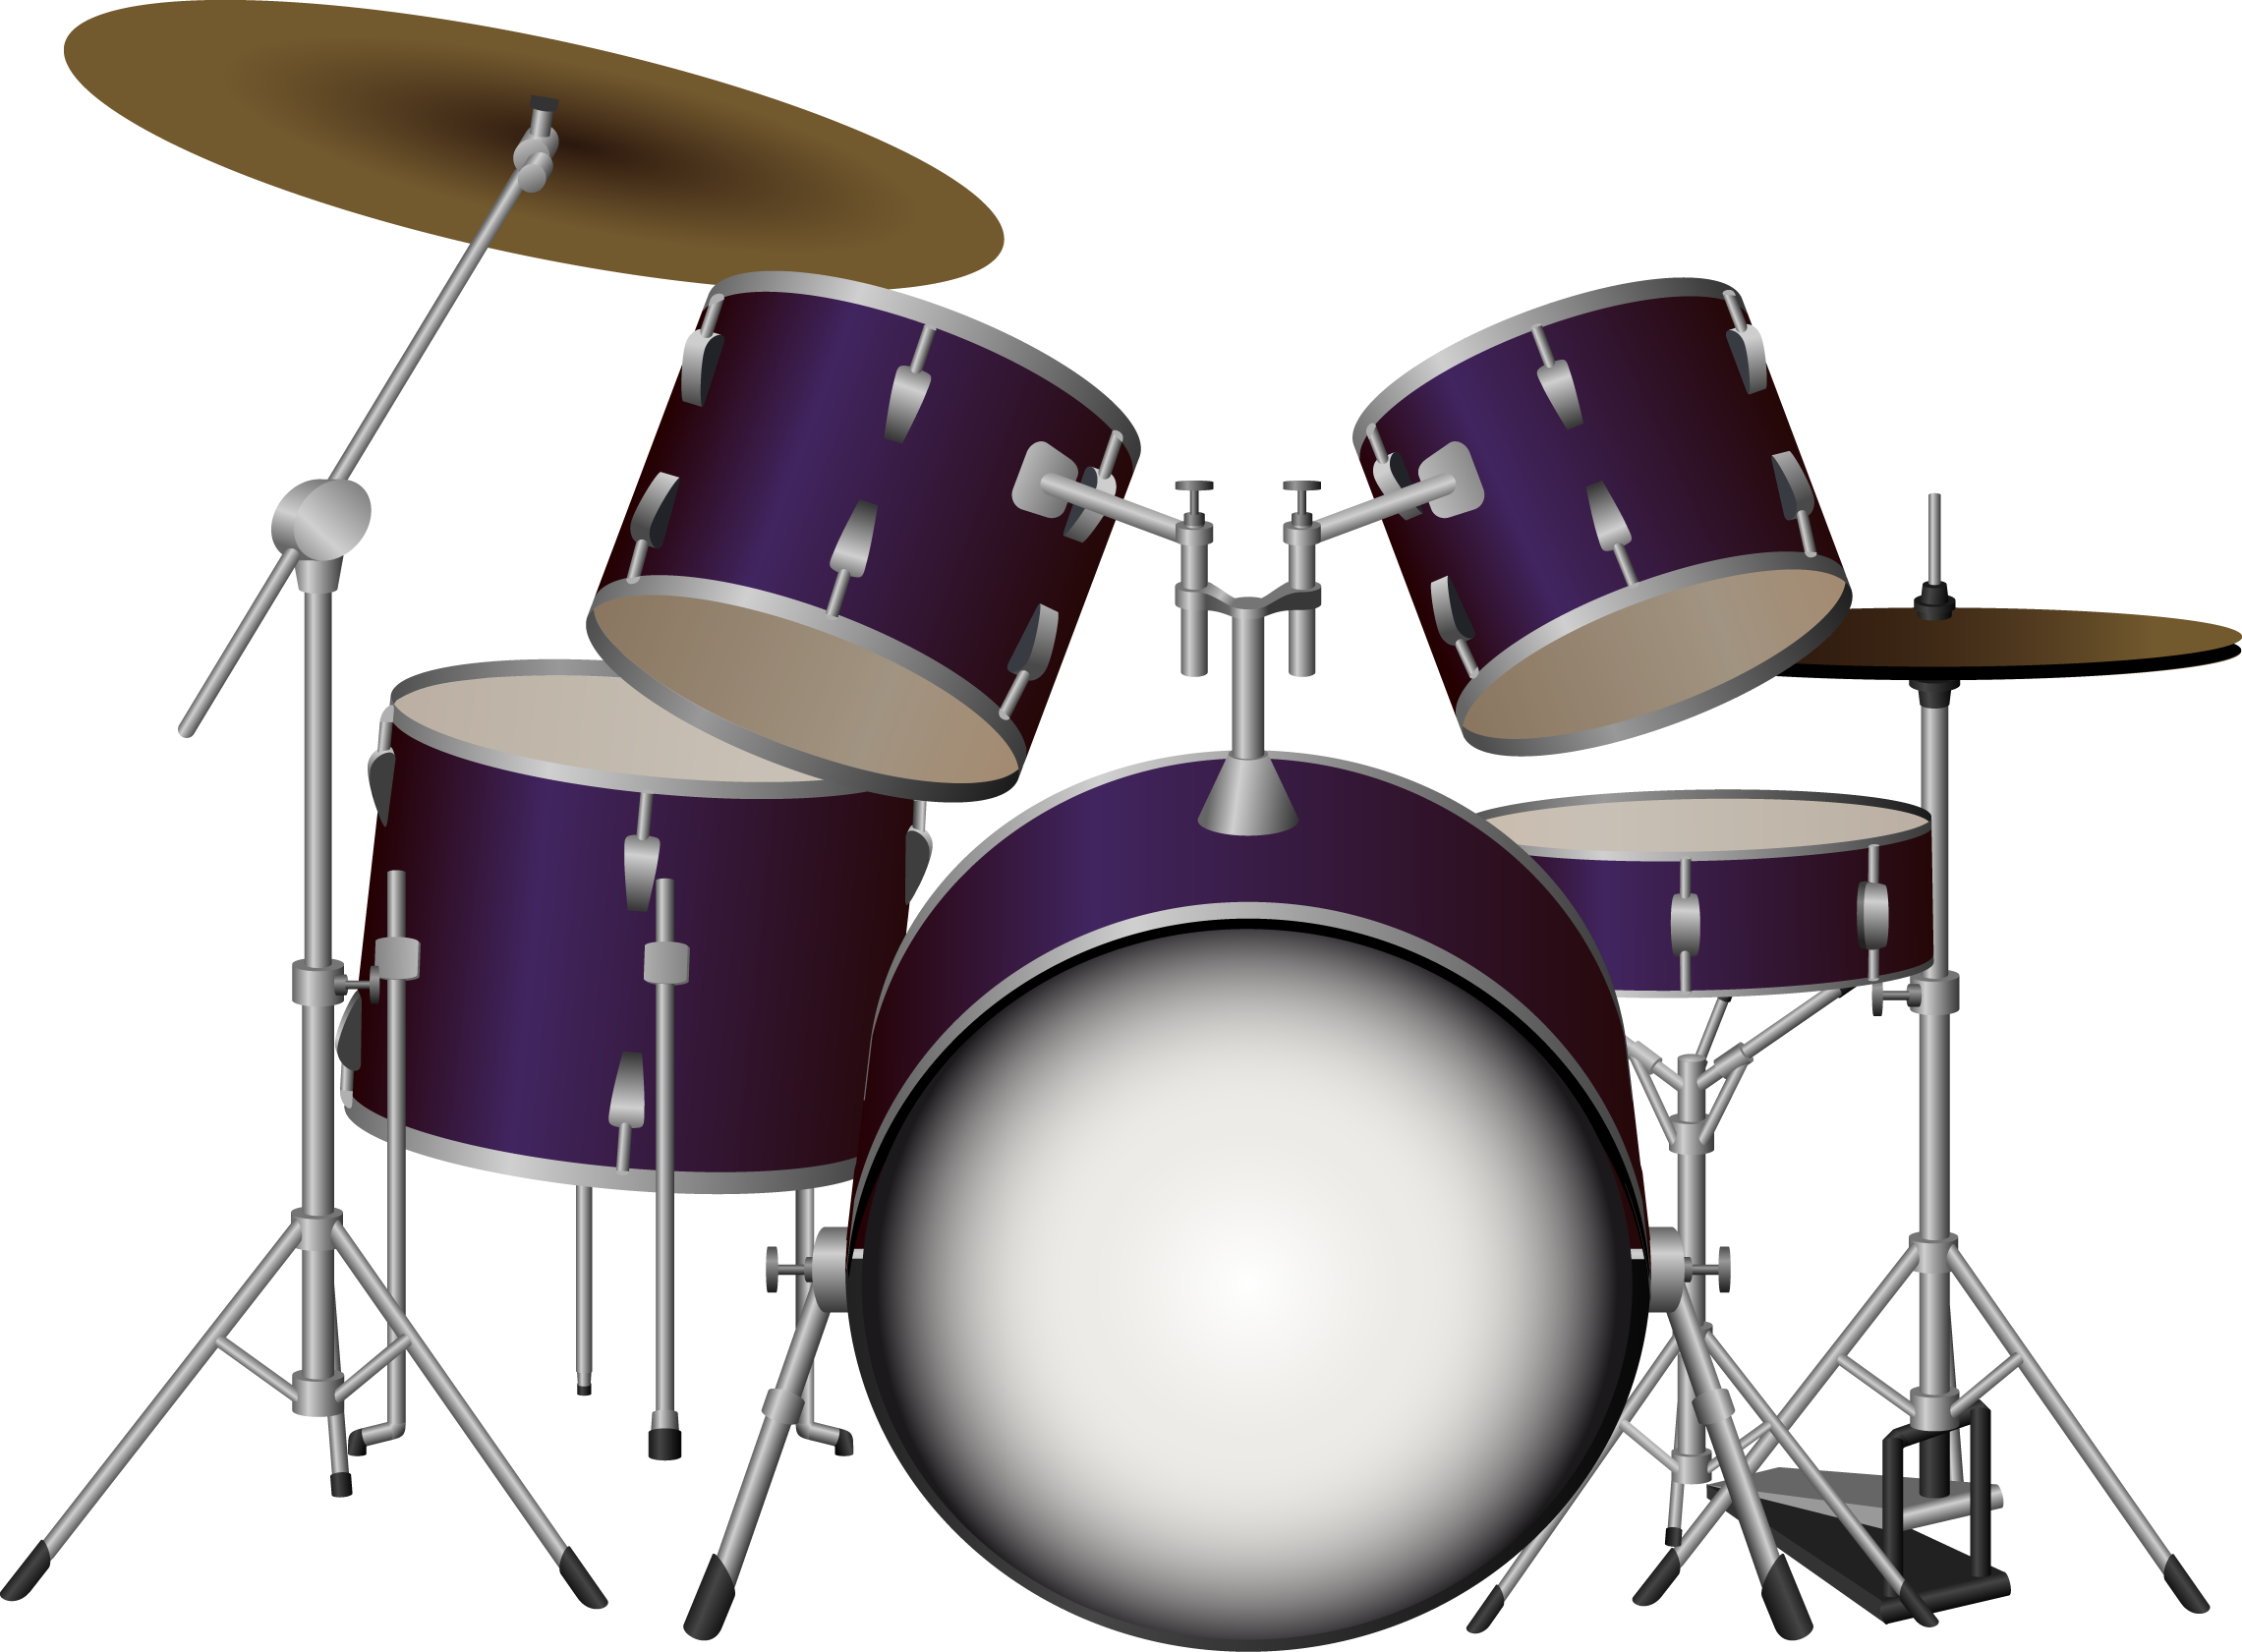 Drums Kit PNG Image